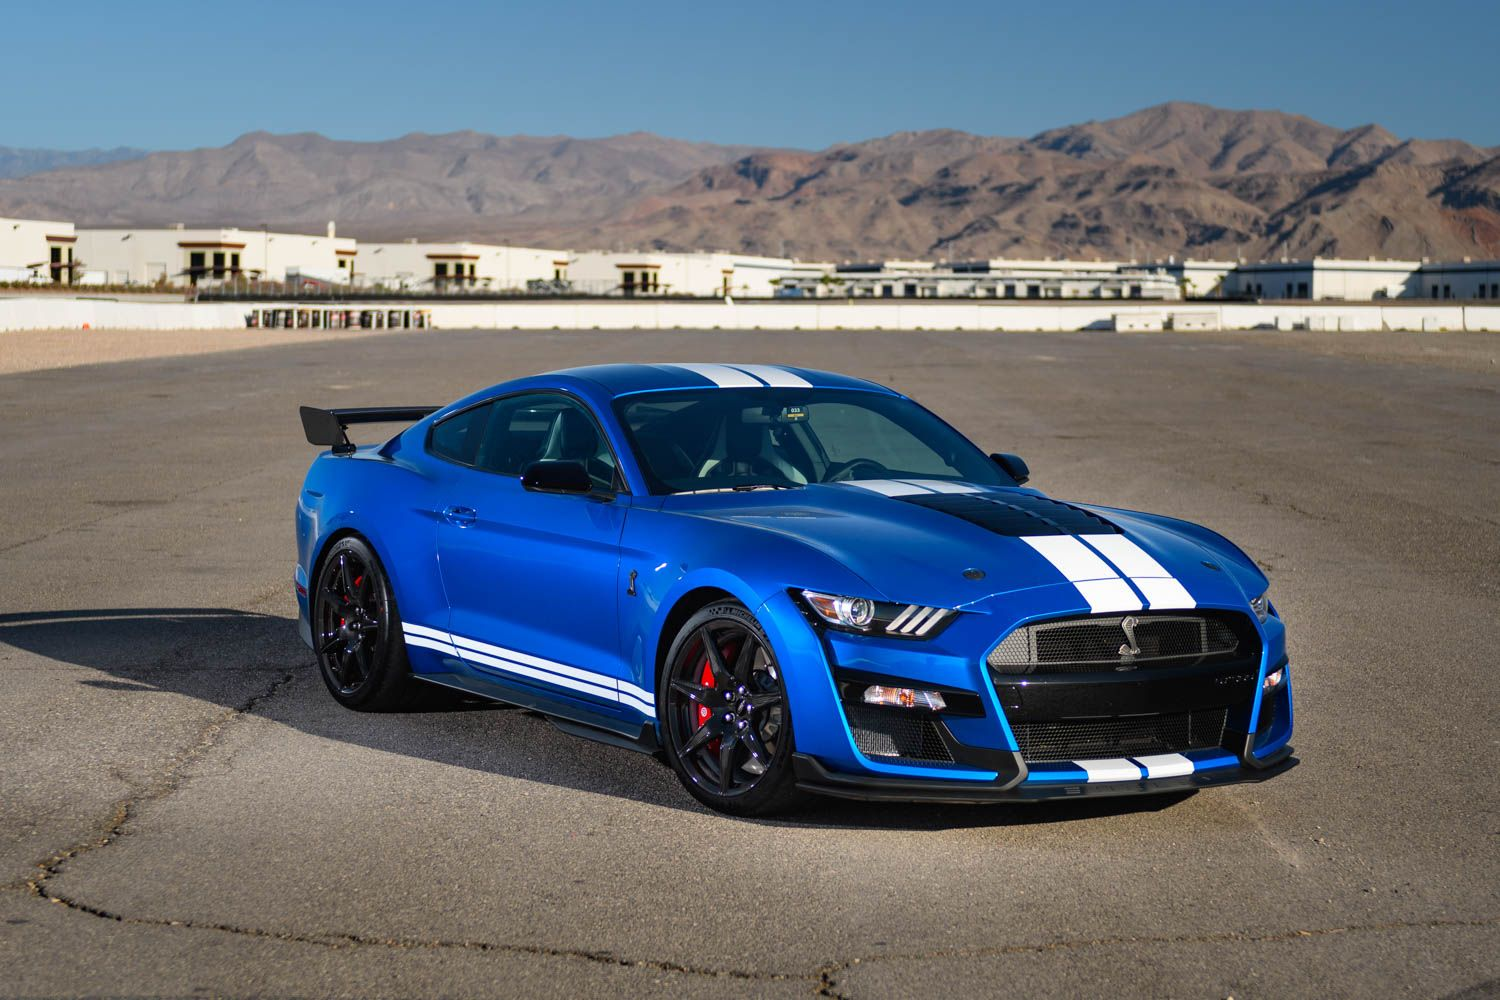 2020 Ford Mustang Shelby Gt500 Secrets Revealed Ford Mustang Ford Mustang Shelby Gt500 Mustang Gt500